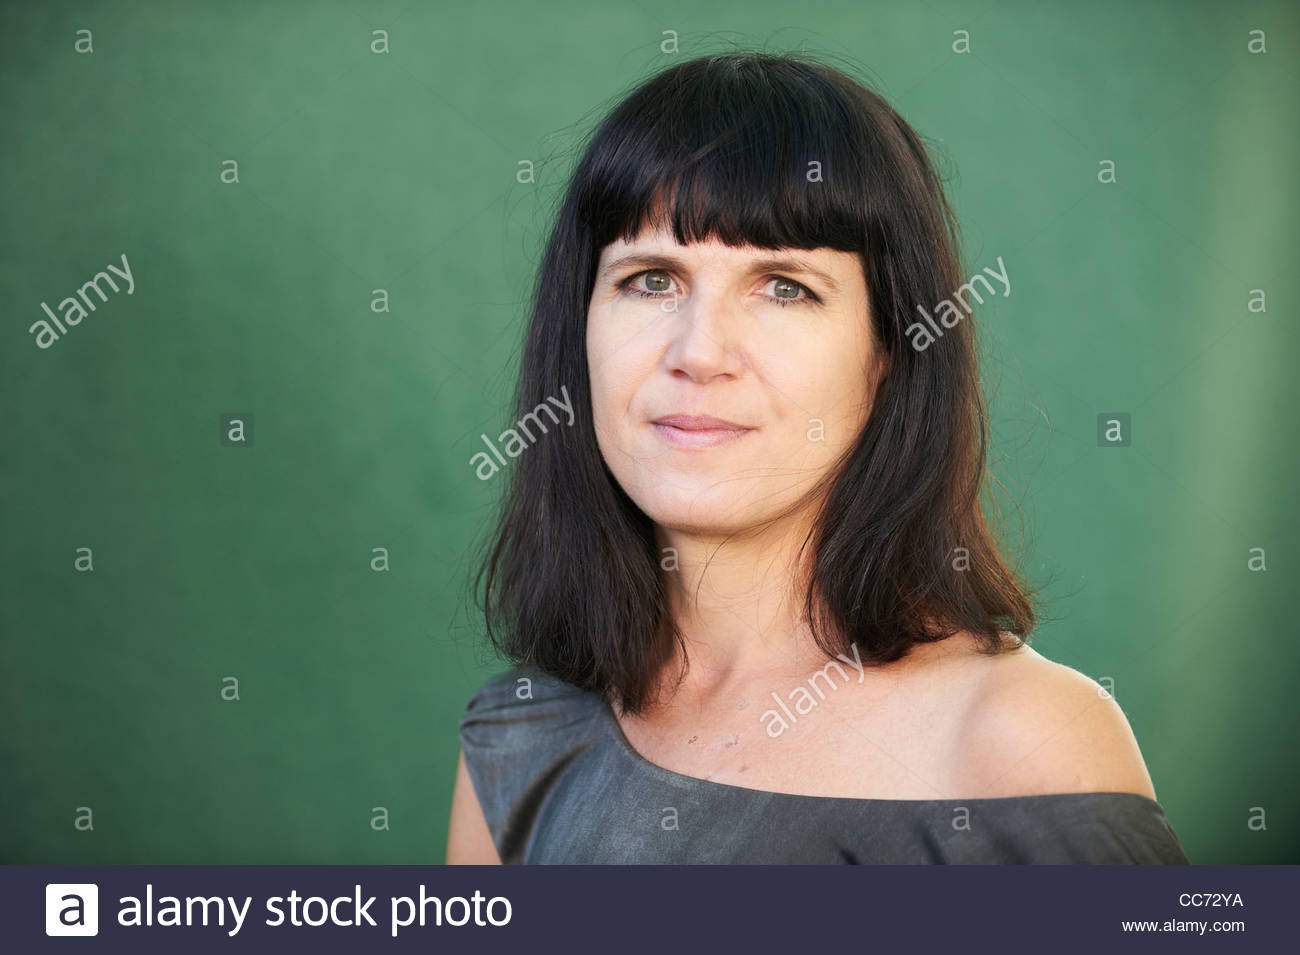 Catherine Mayer, journalist, commentator and writer of Amortality about aging at The Edinburgh International Book - Stock Image